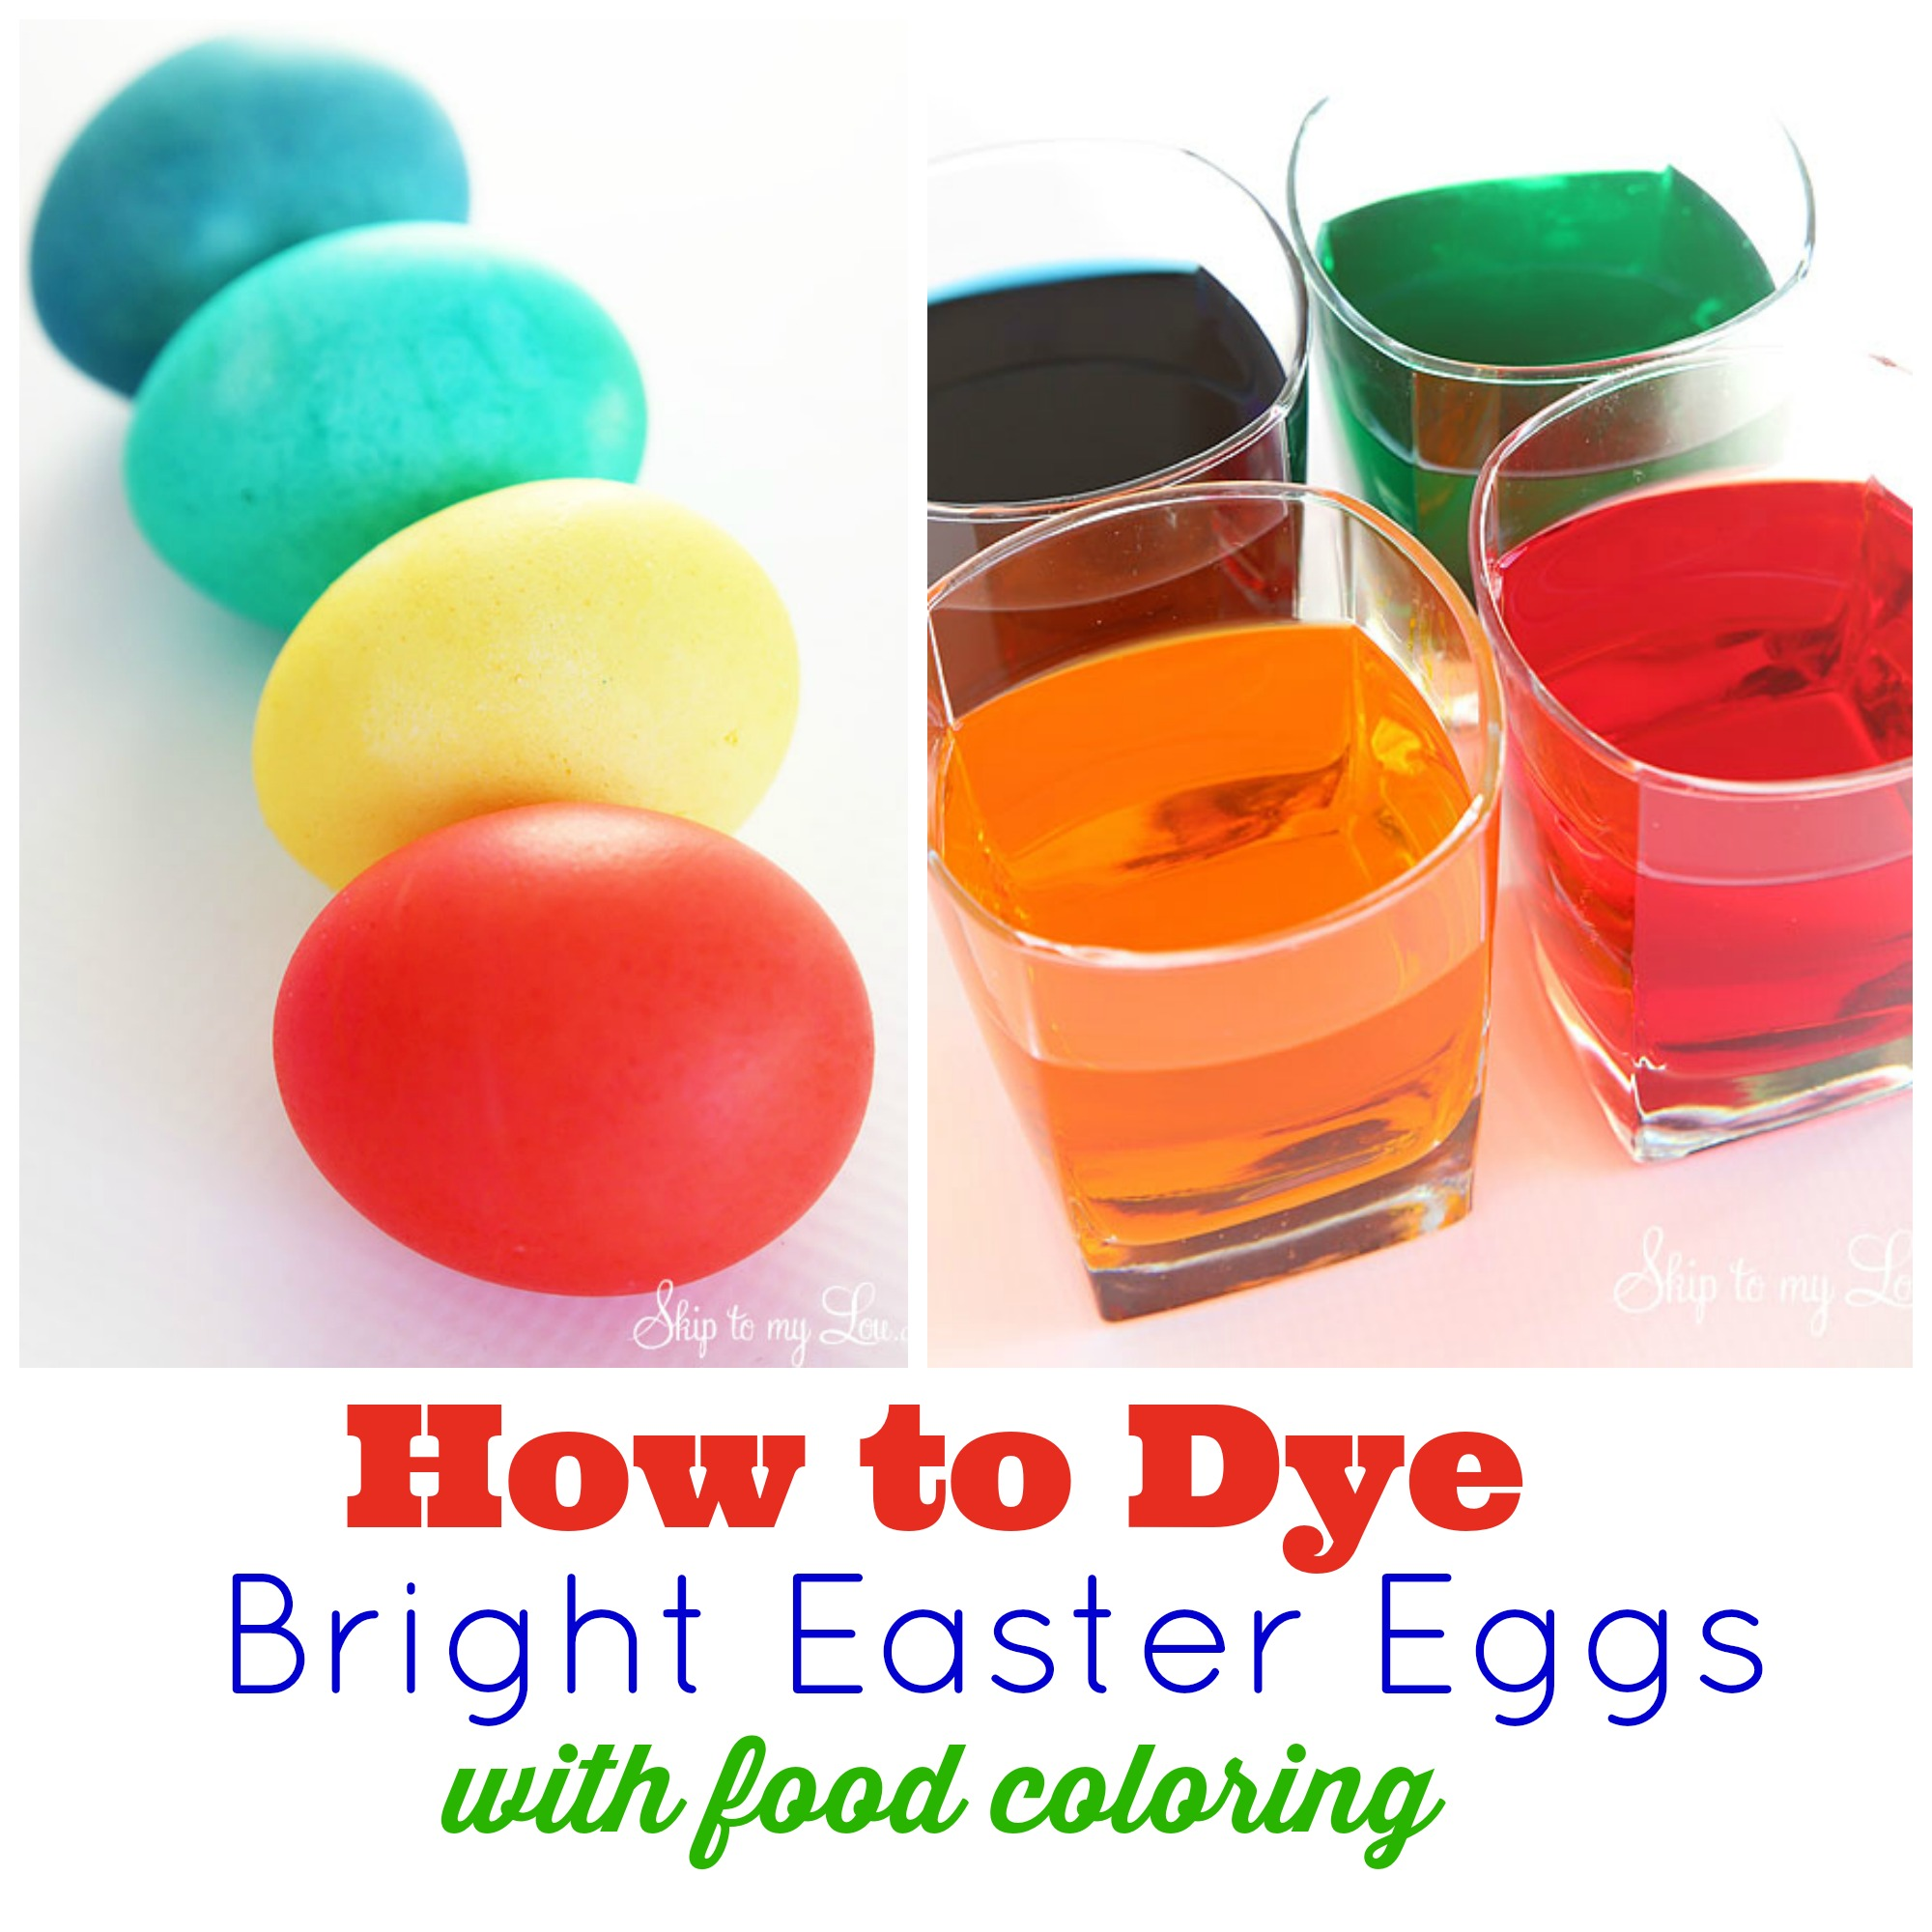 Dying Easter eggs; colored eggs, glasses filled with food coloring